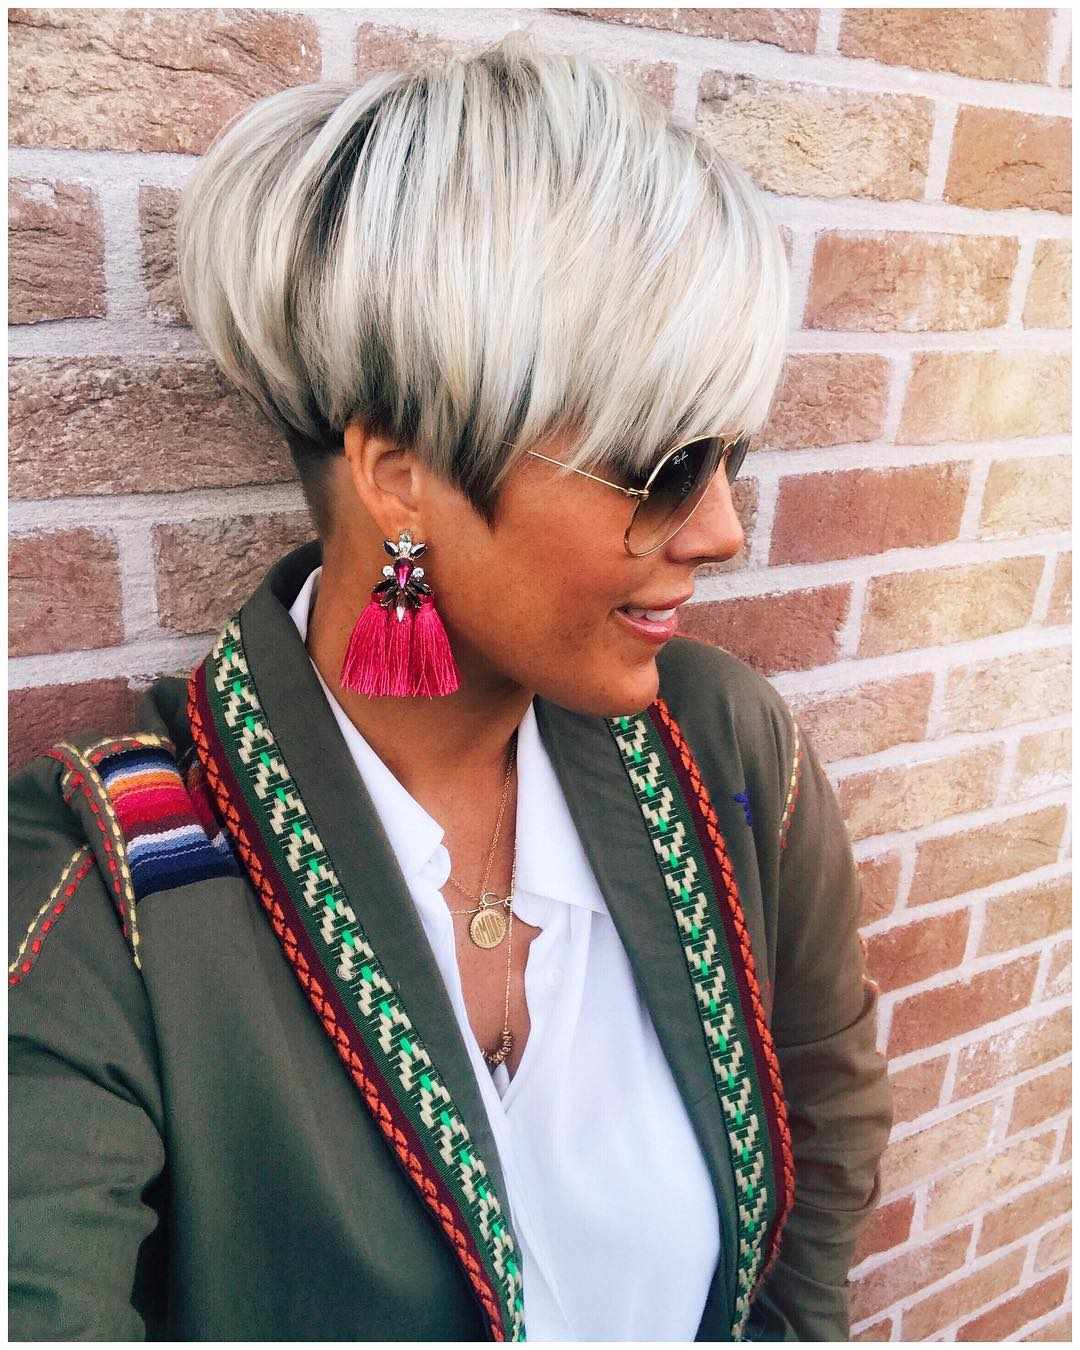 10 Colorful & Stylish Easy Pixie Haircut Ideas - Short ...